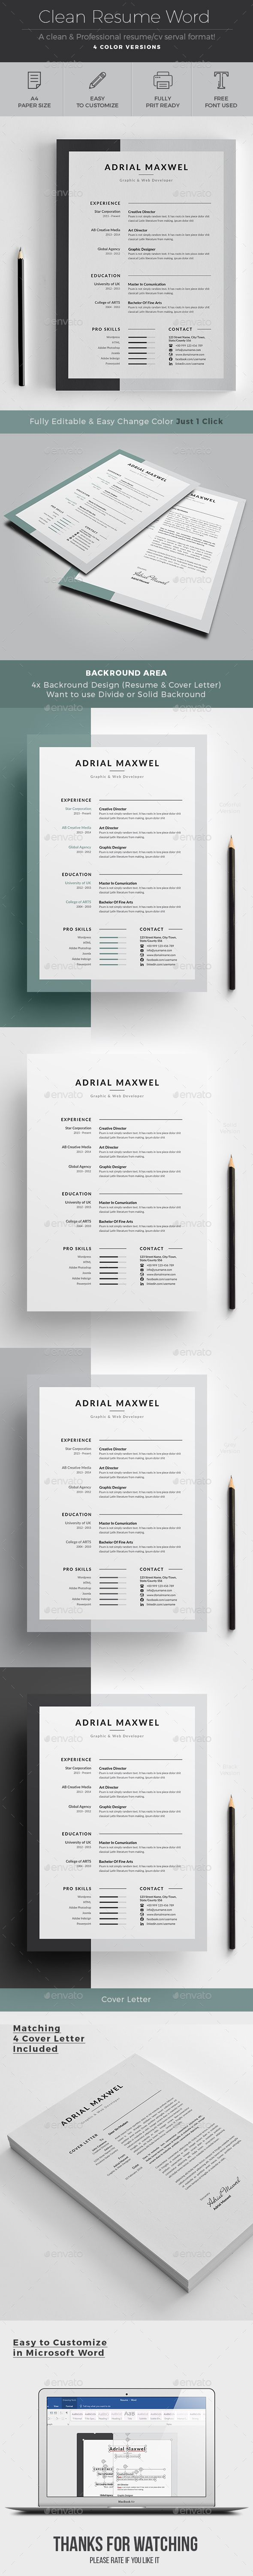 33 Best Resume Templates Images On Pinterest | Resume Templates